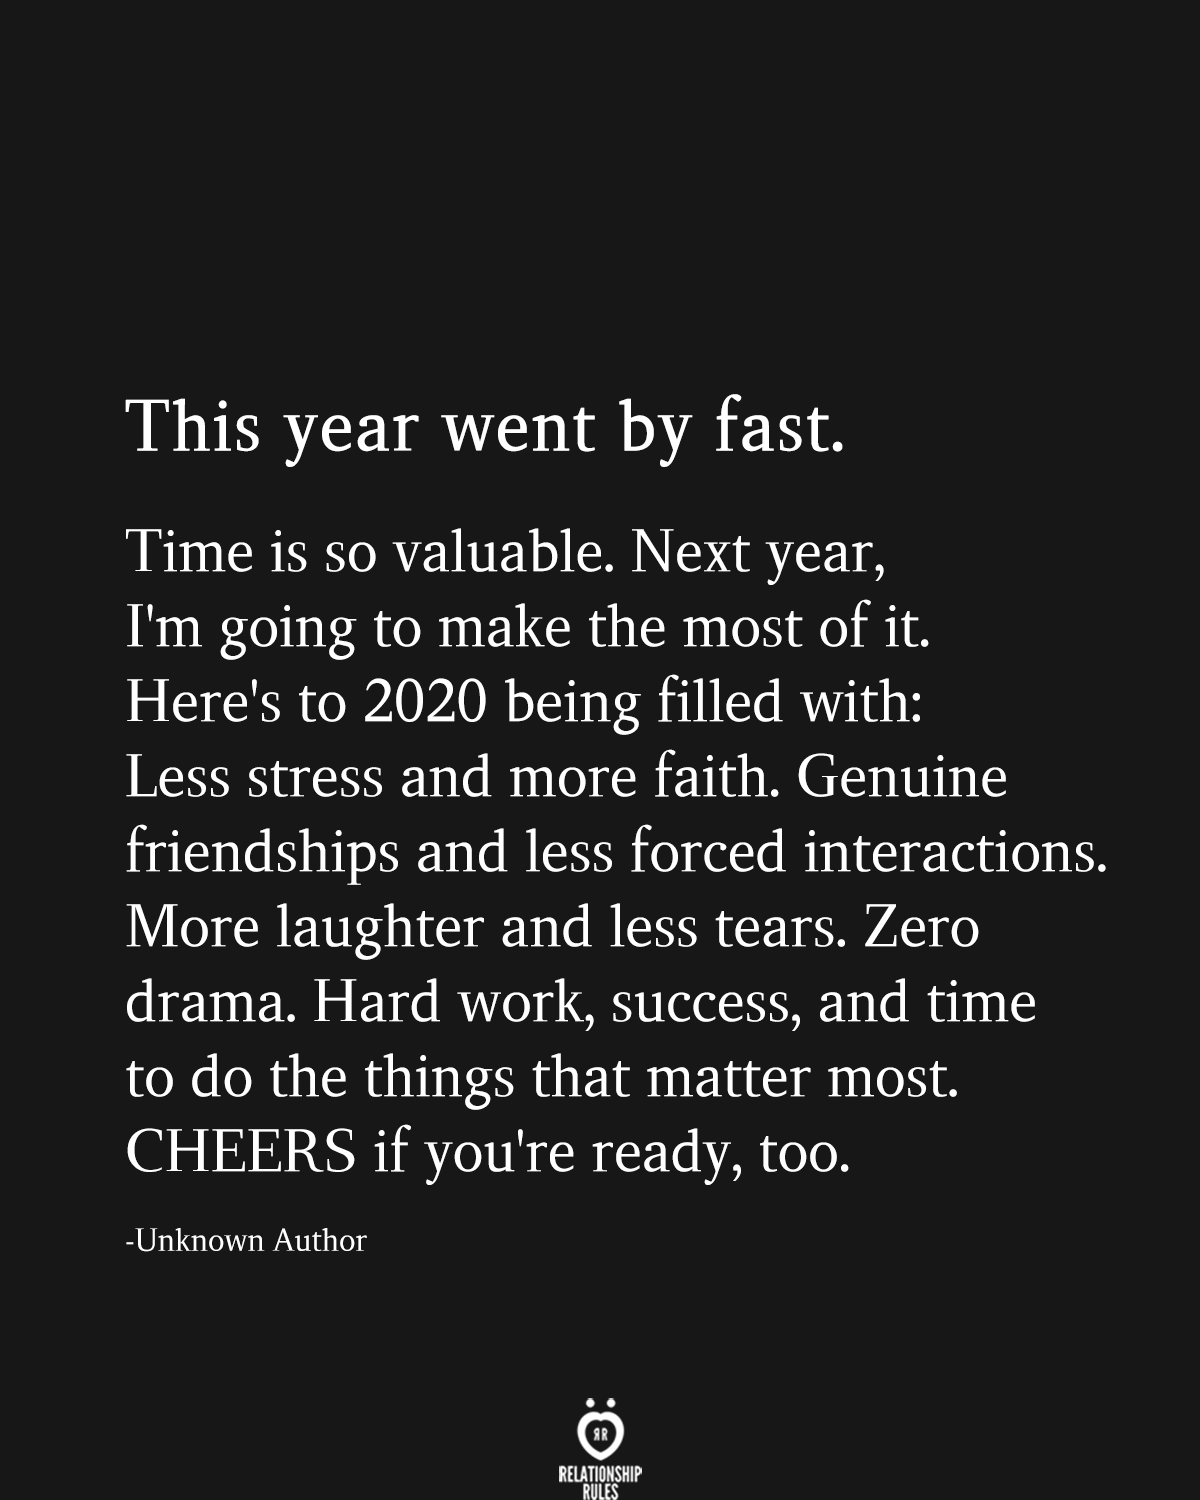 This Year Went By Fast. Time Is So Valuable. Next Year, I'm Going To Make The Most Of It #2020quotes